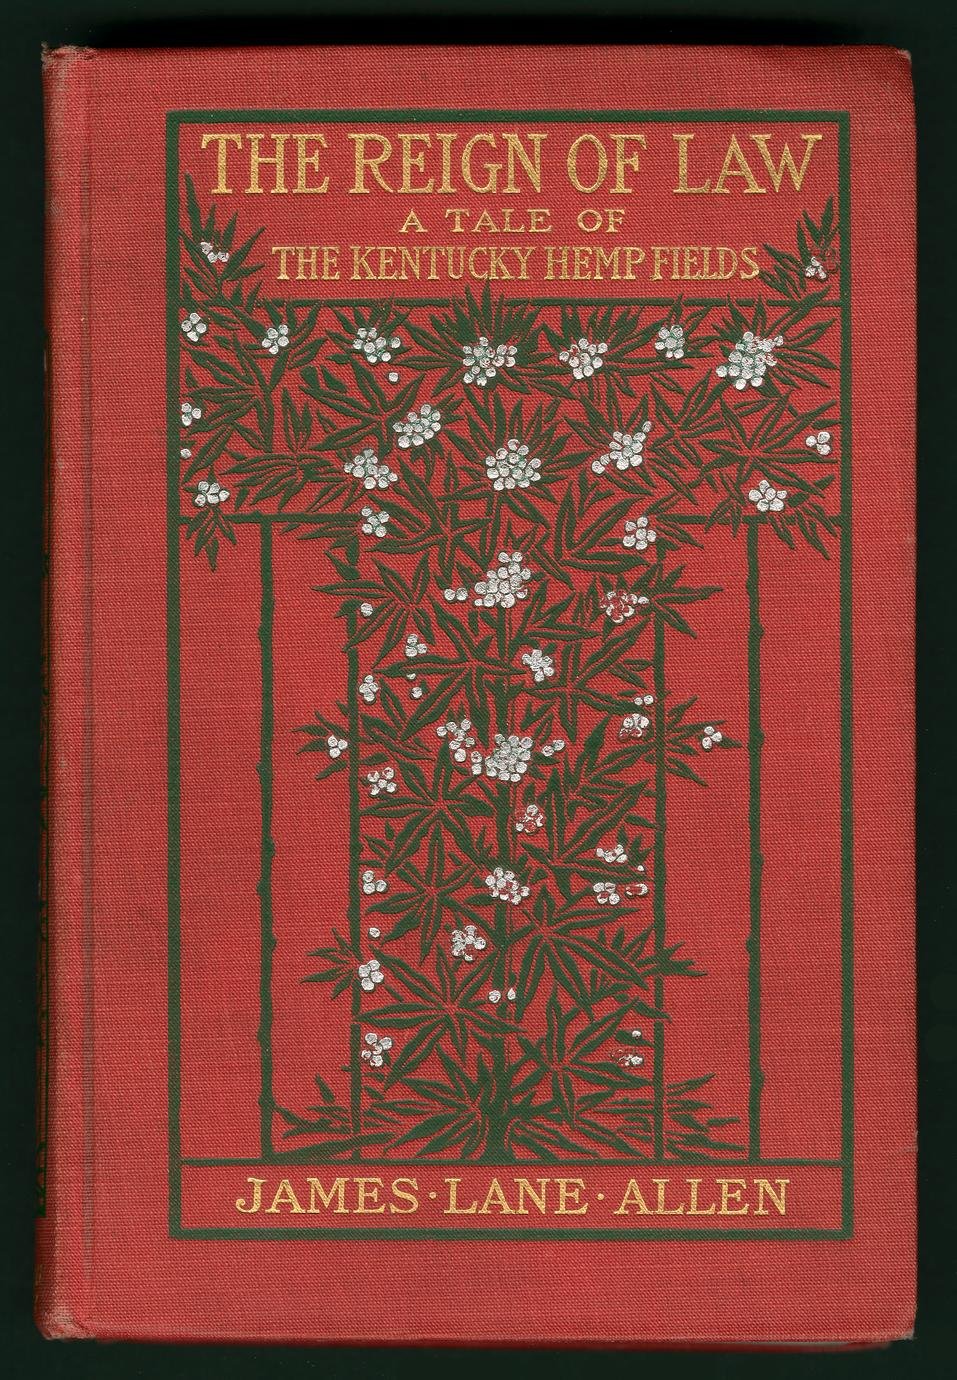 The reign of law : a tale of the Kentucky hemp fields (1 of 2)